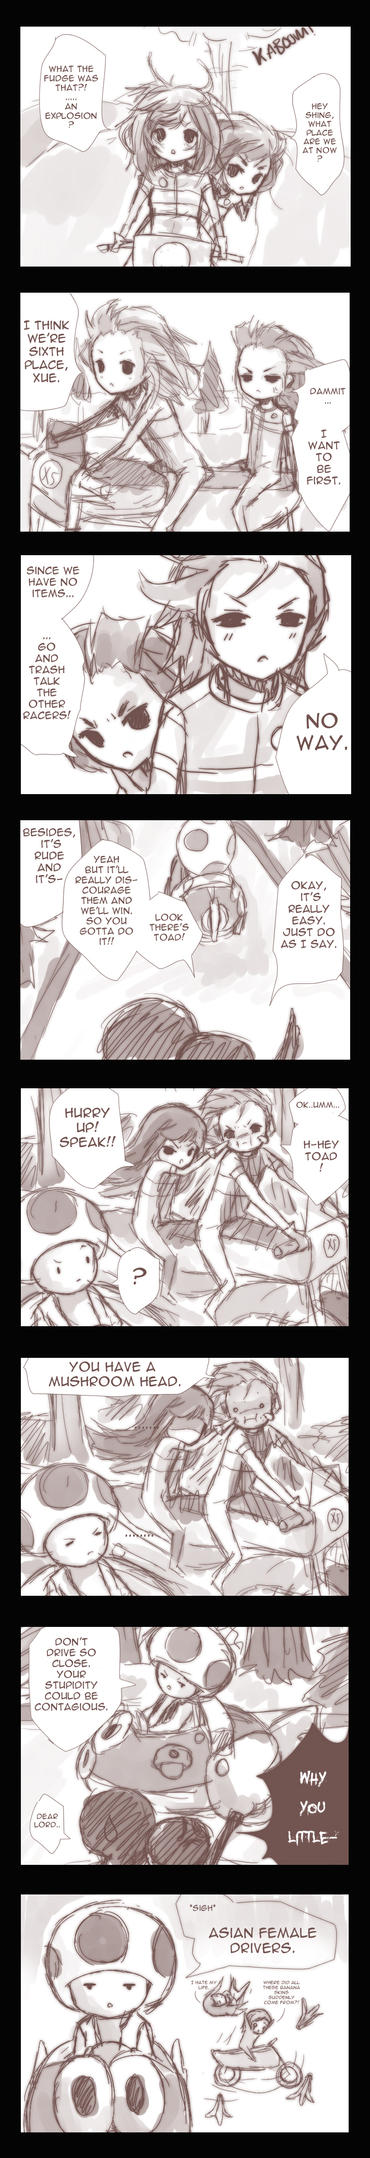 Relay Comic Part 3 ft. Xue by Shingaka